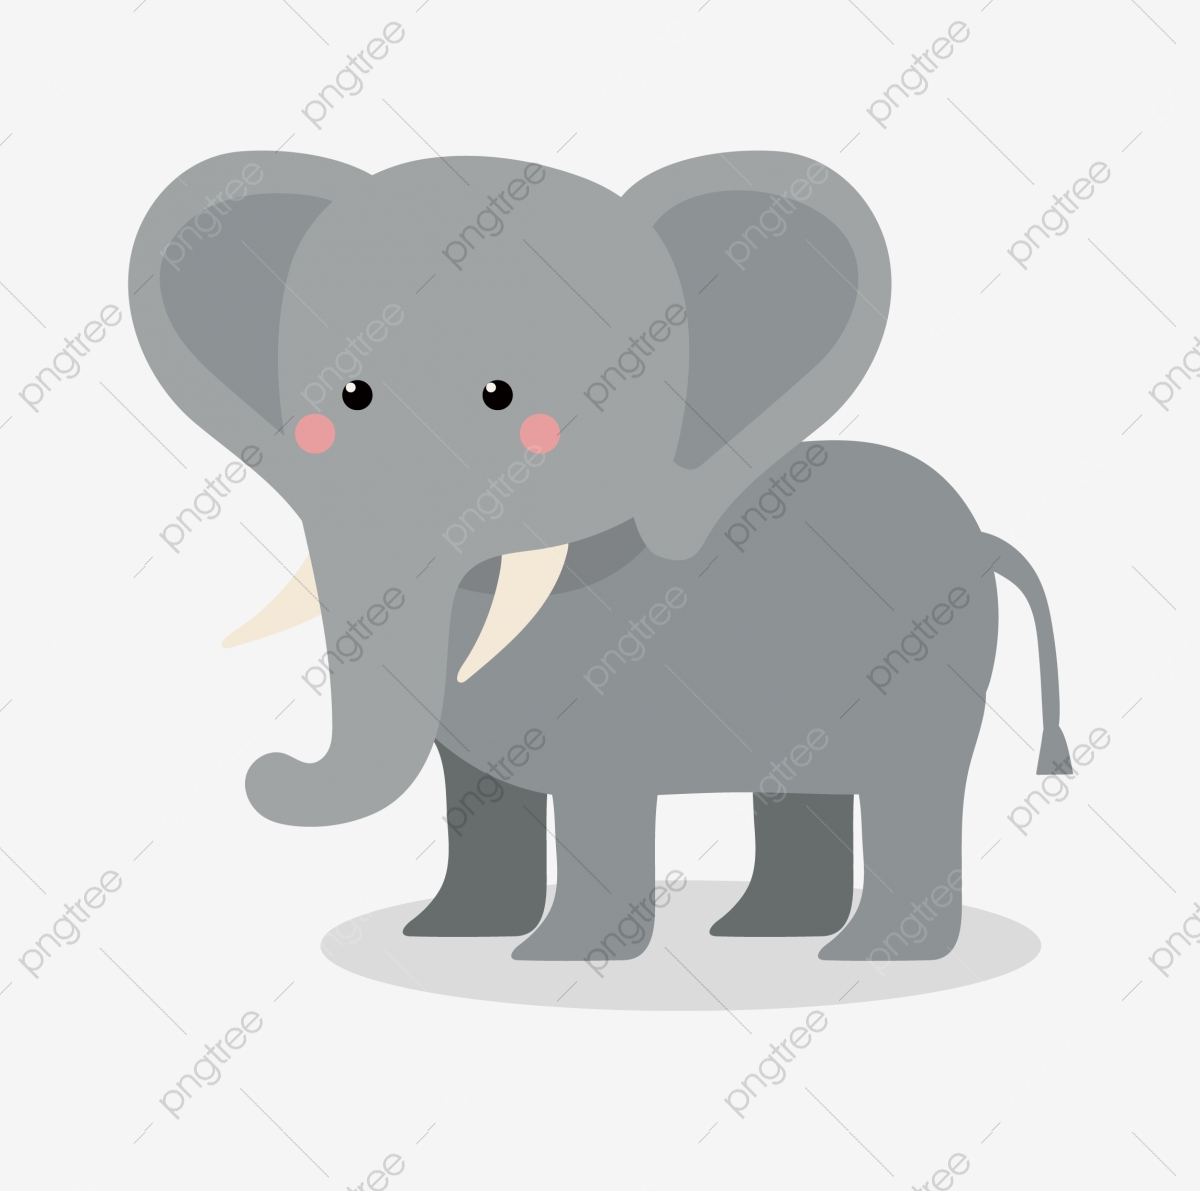 Elephant Cartoon Png Vector Psd And Clipart With Transparent Background For Free Download Pngtree The pnghost database contains over 22 million free to download transparent png images. https pngtree com freepng lovely gray grey elephant cartoon 3920706 html